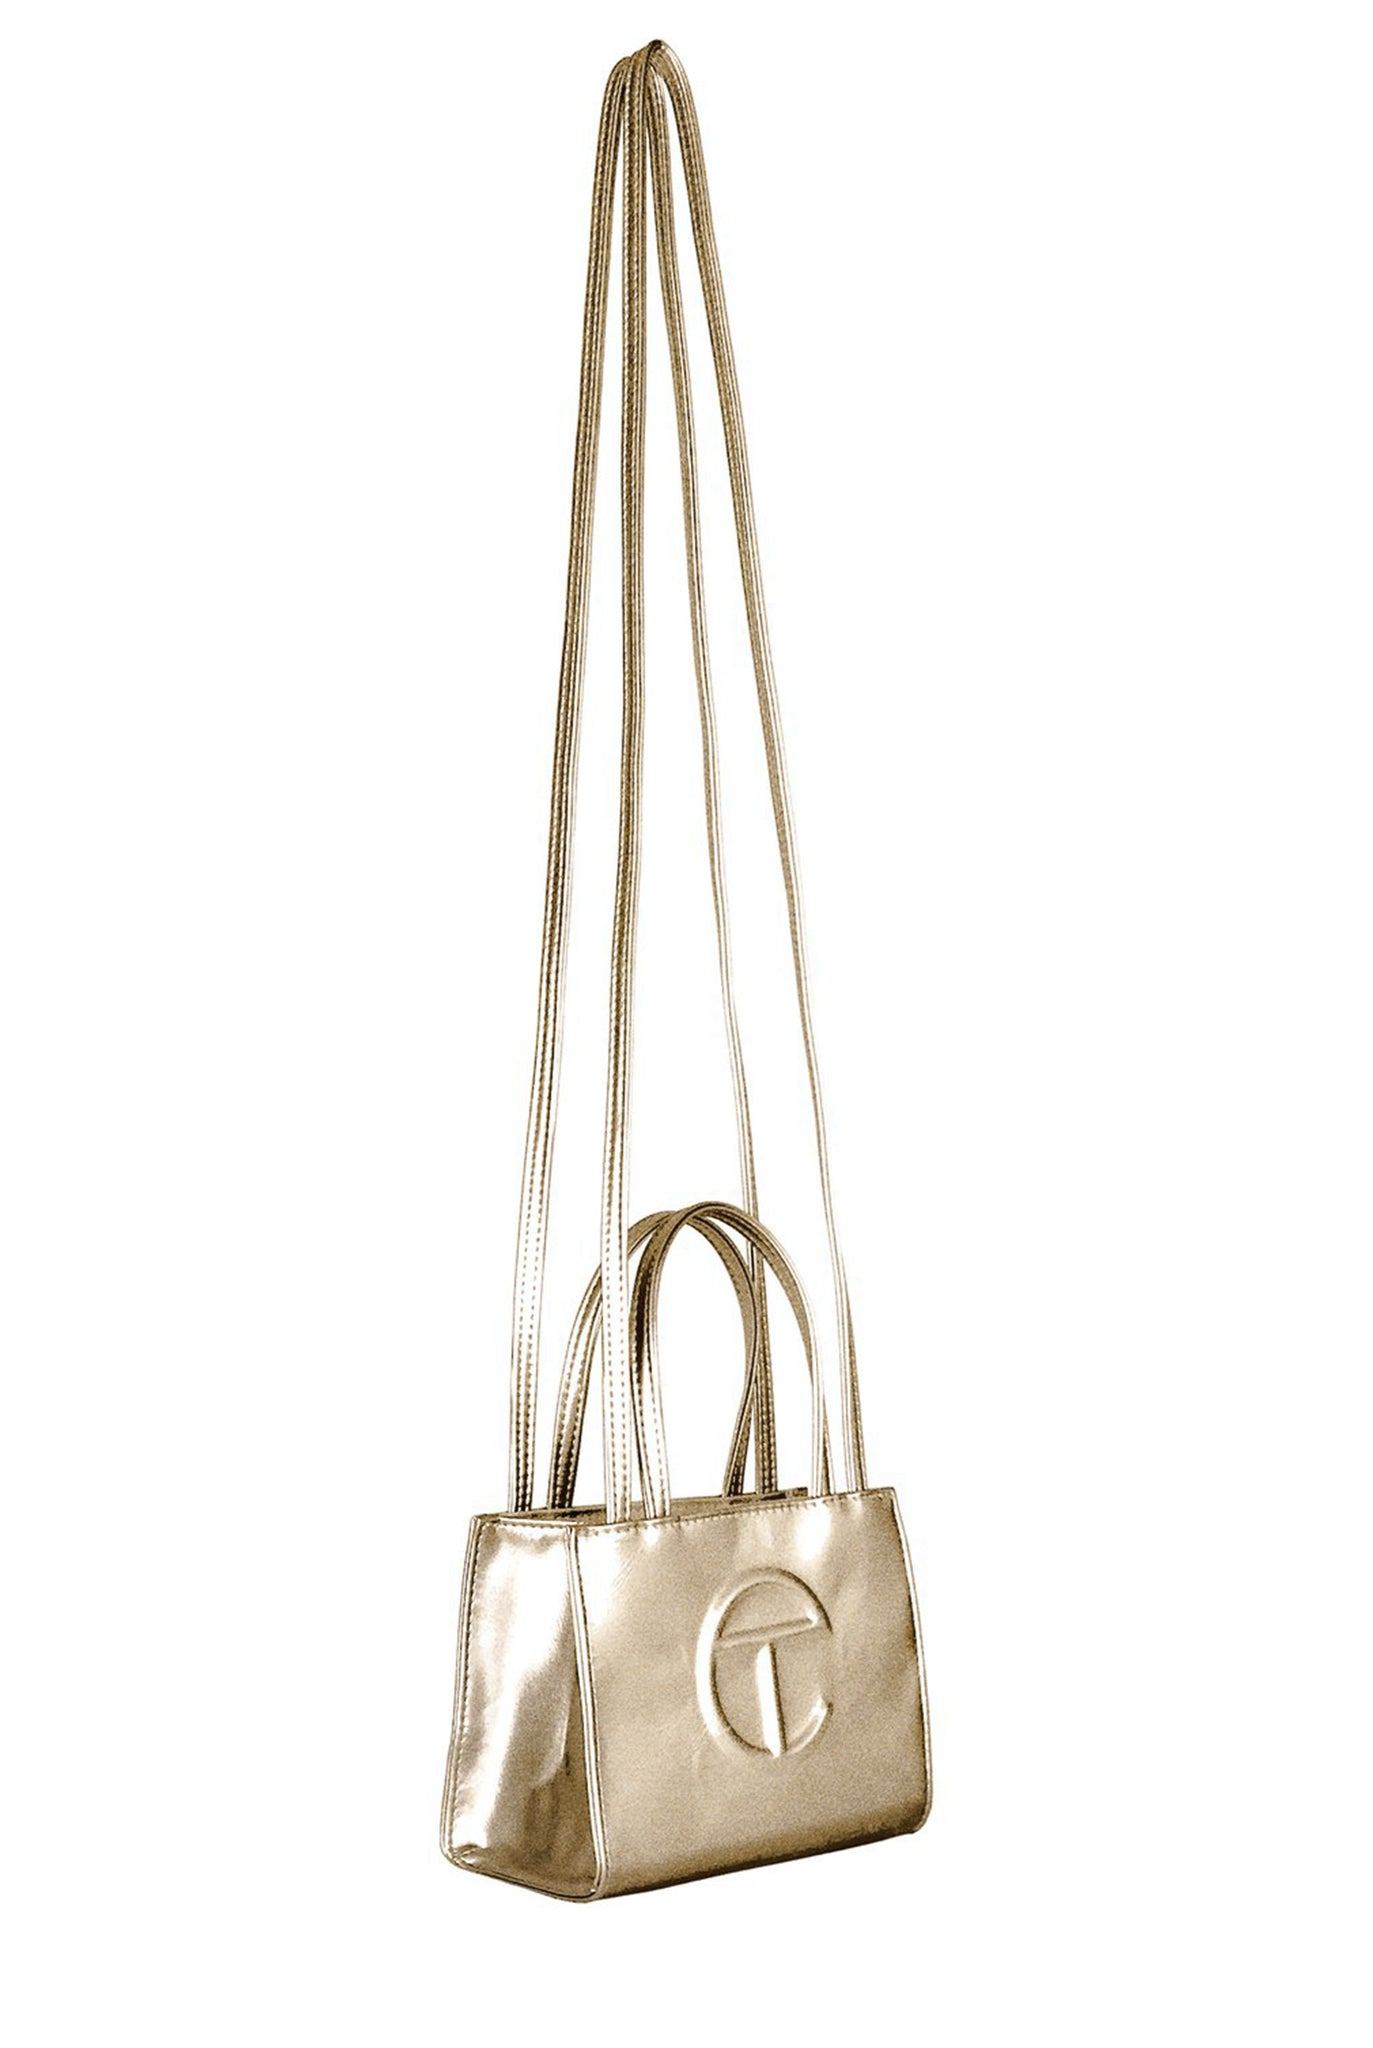 Telfar Small Shopping Bag, Bronze